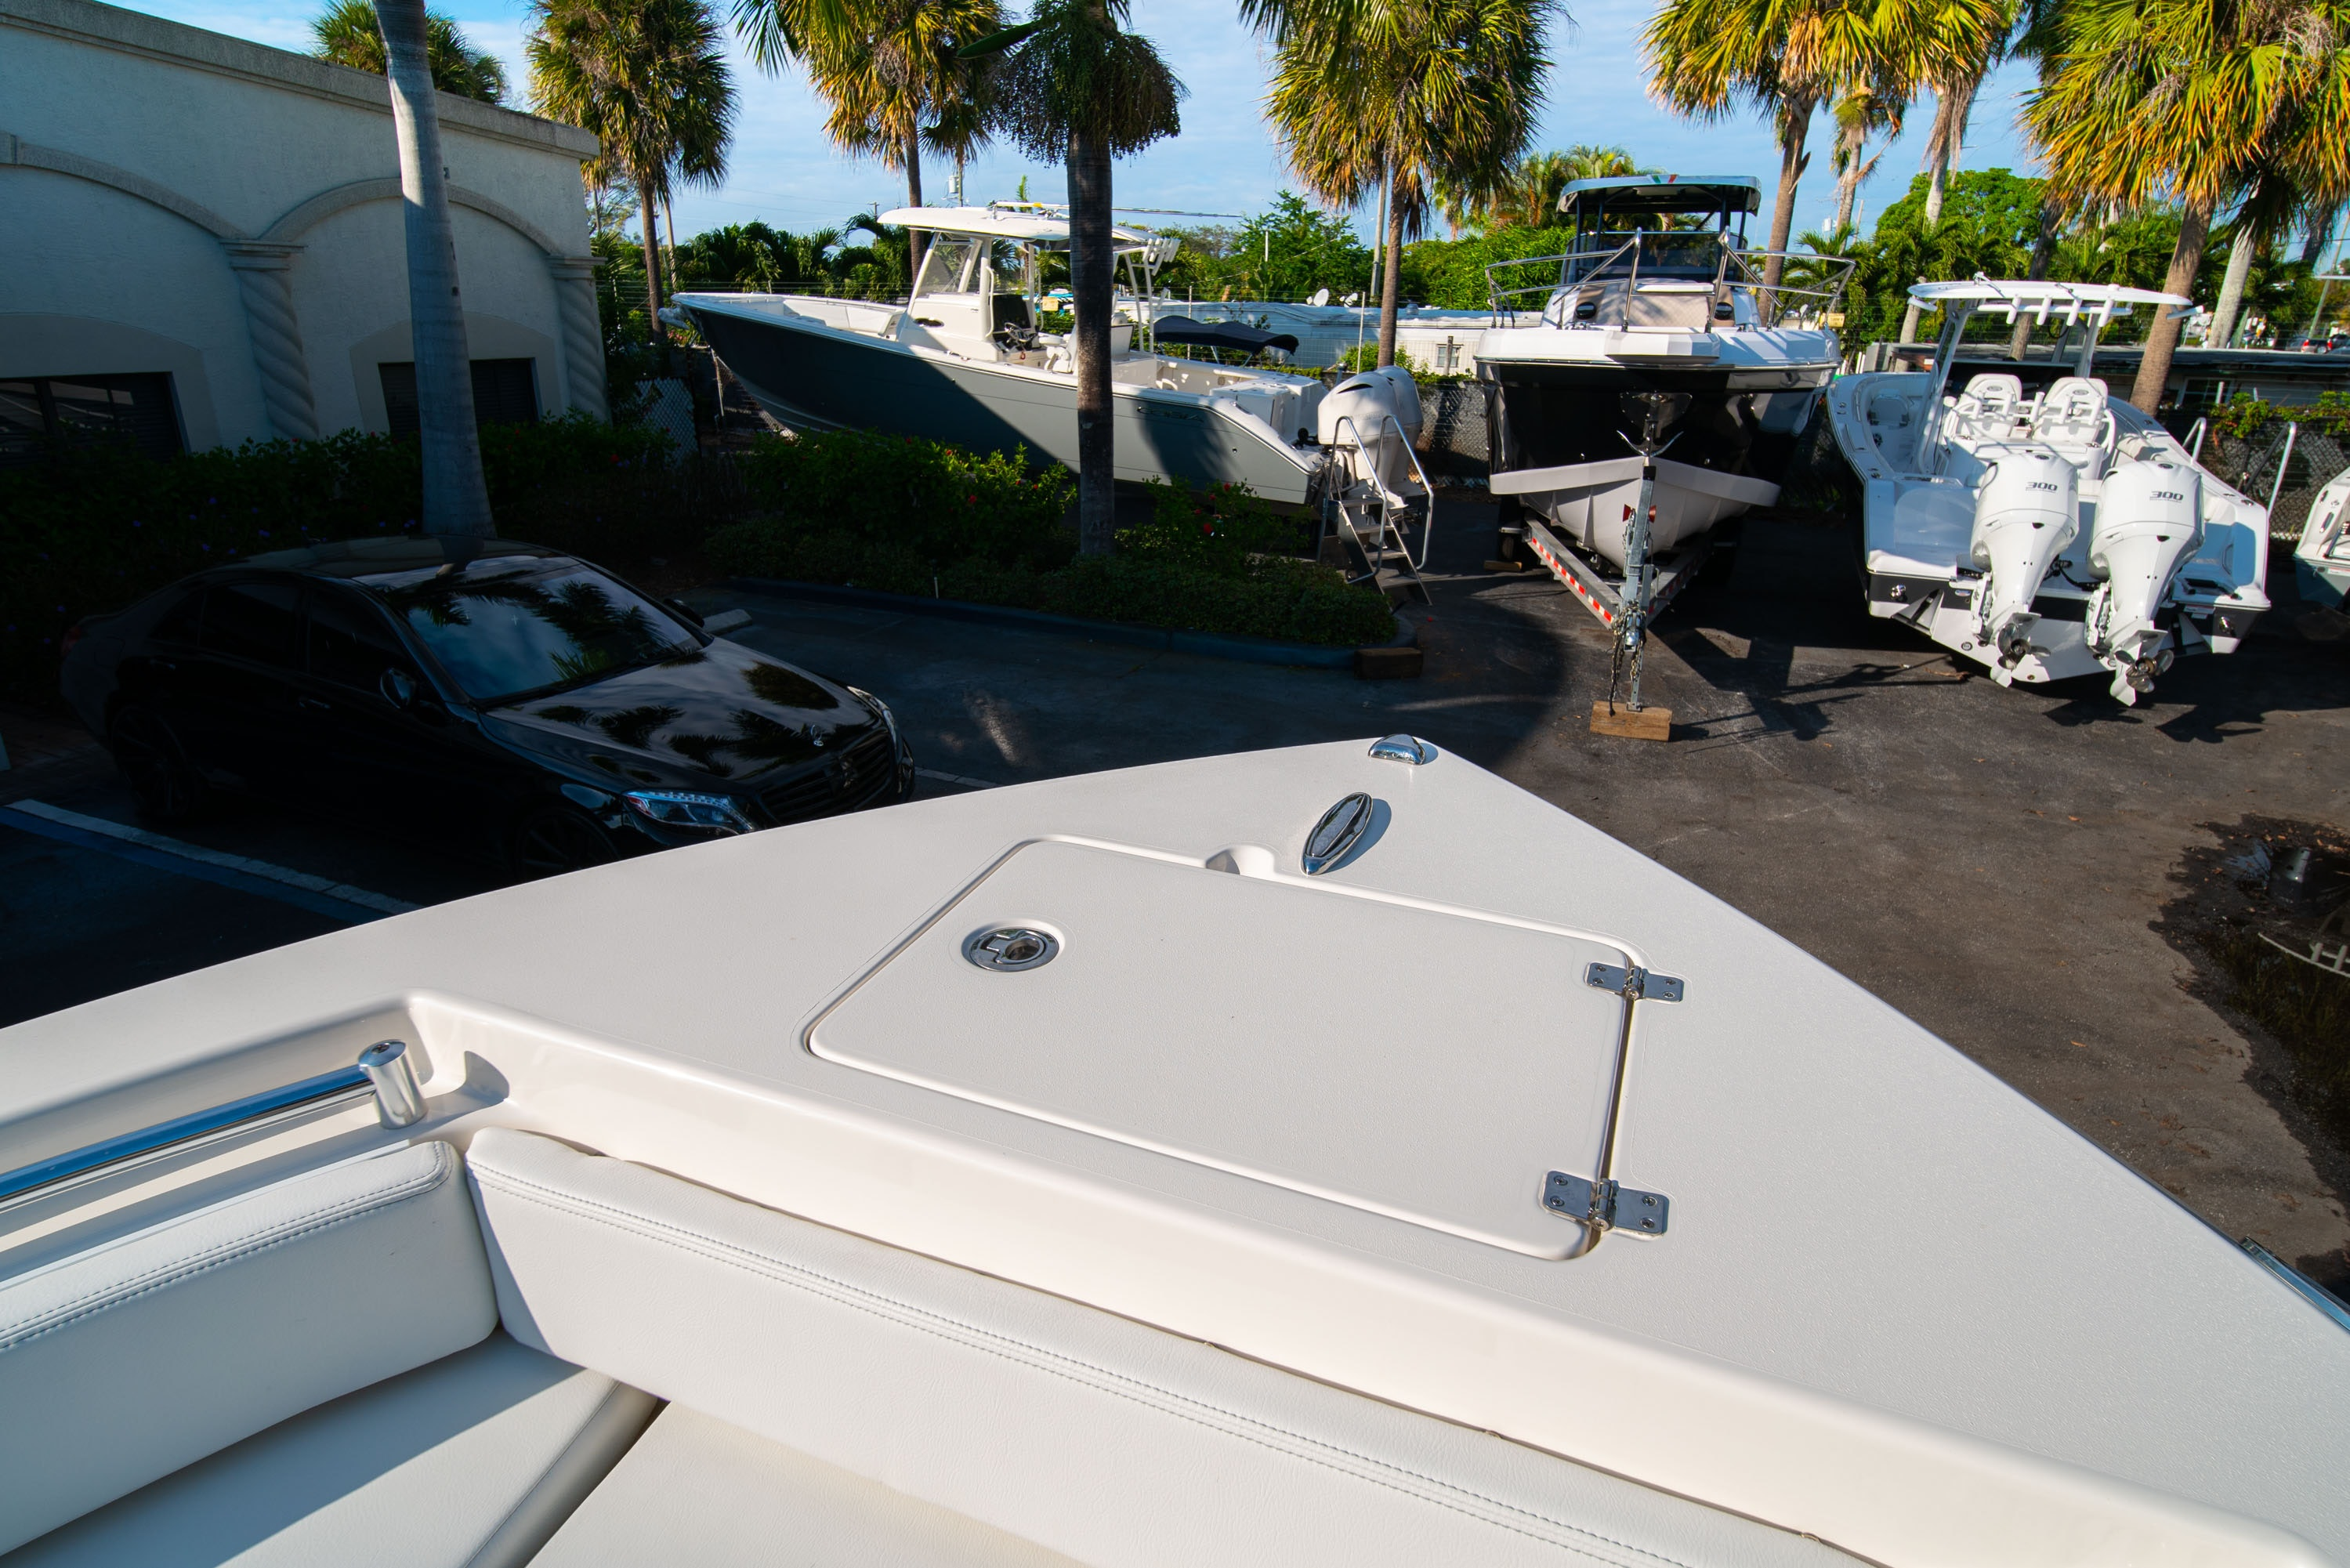 Thumbnail 36 for New 2020 Cobia 220 CC boat for sale in West Palm Beach, FL